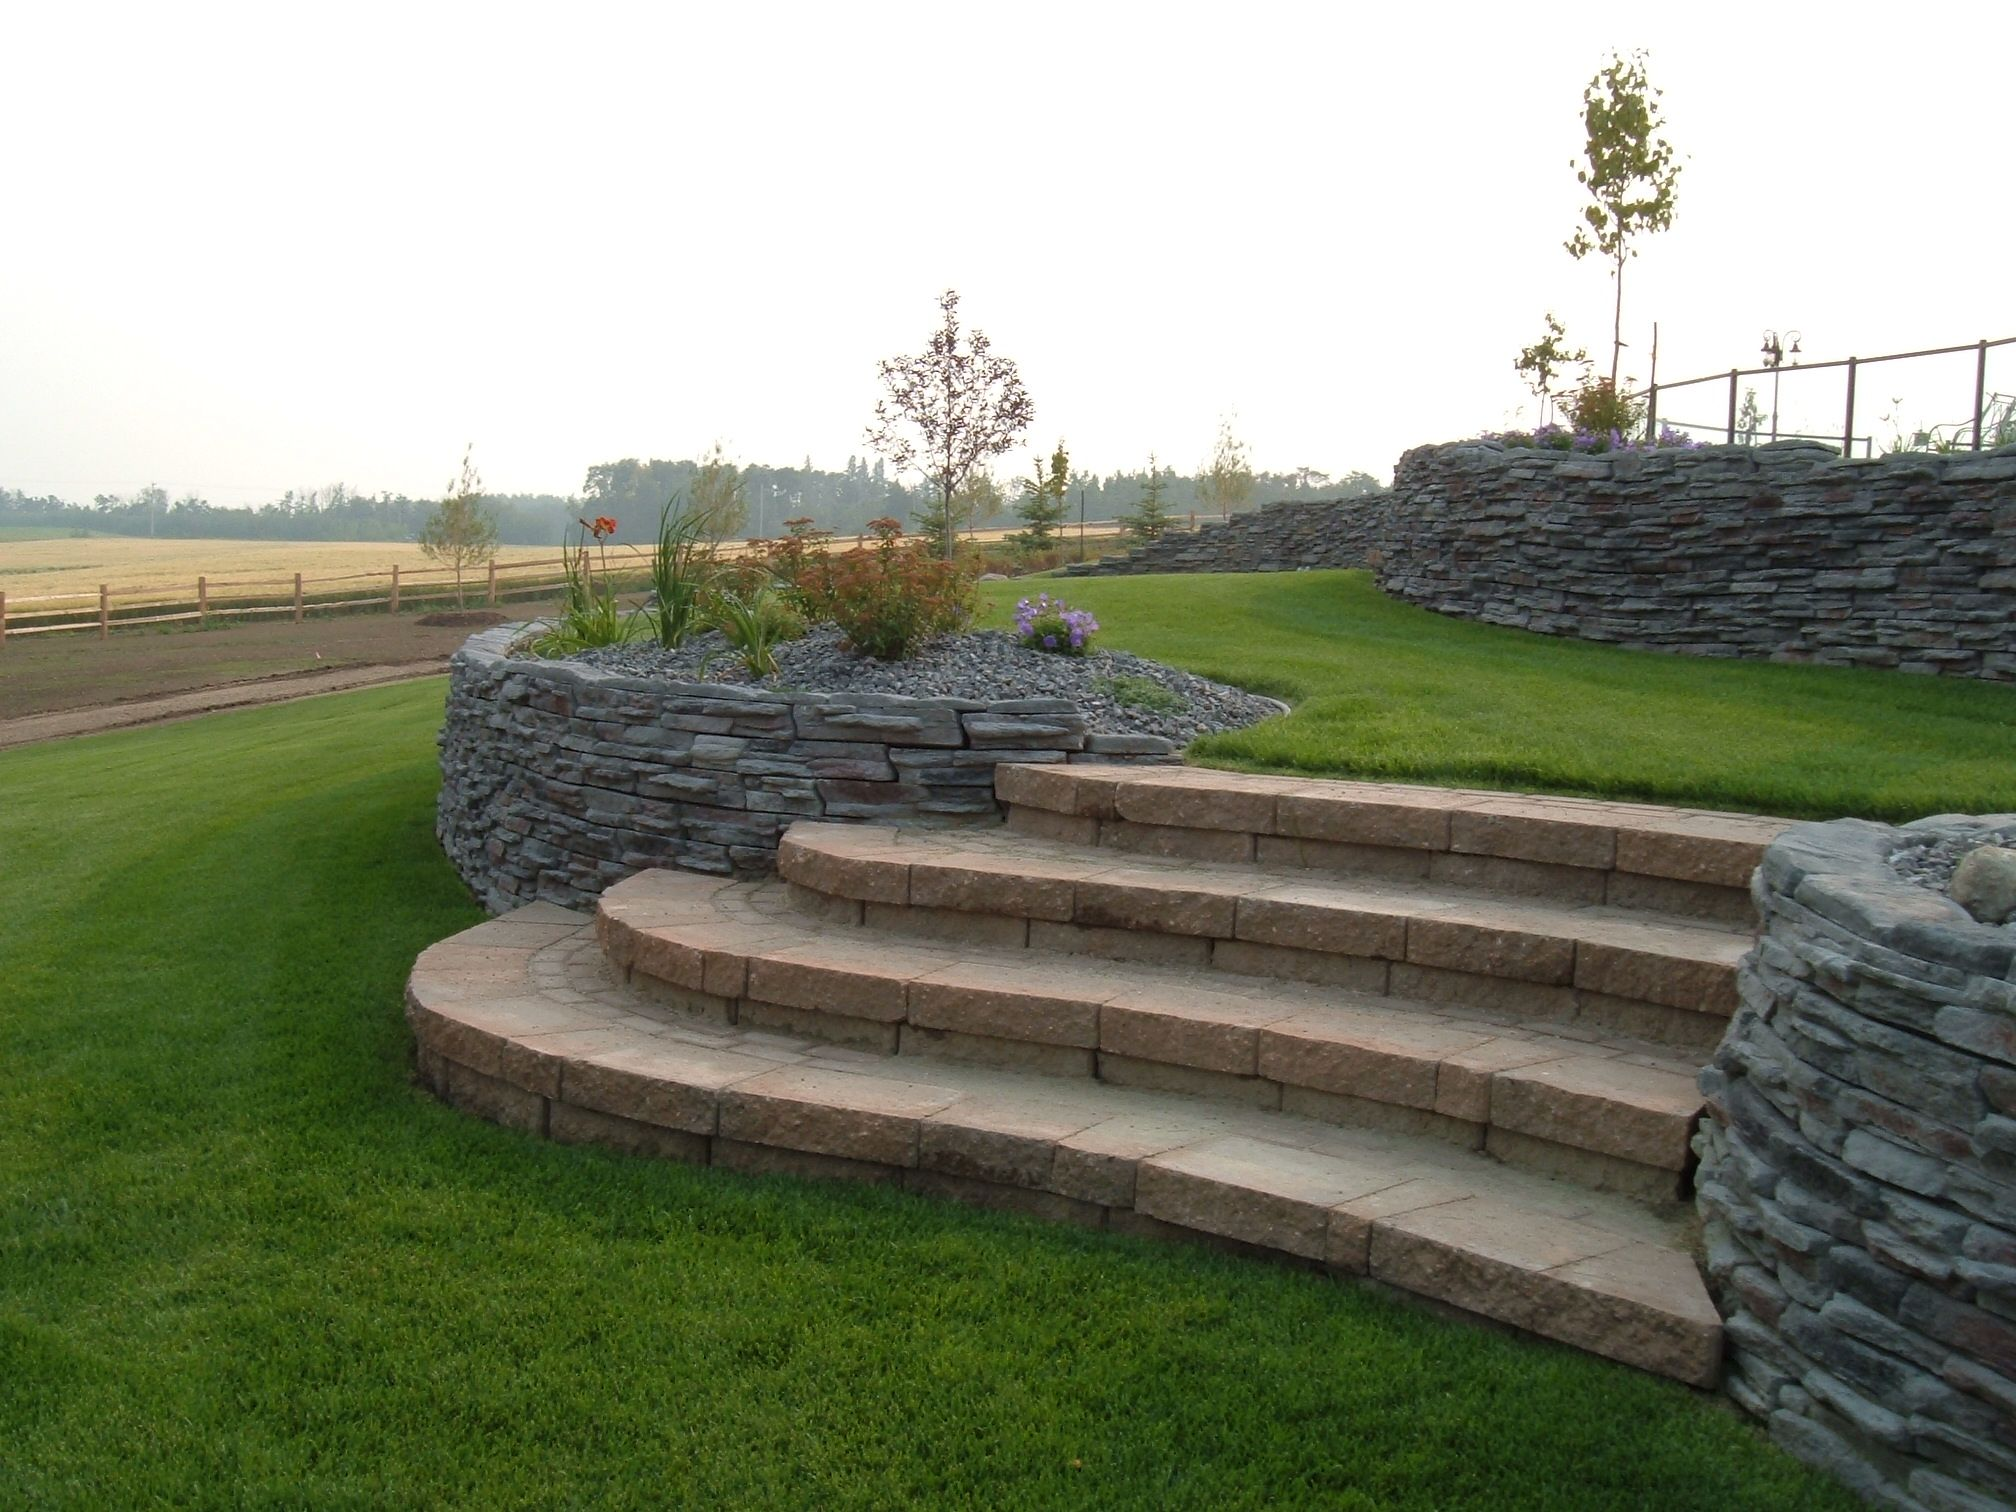 Creative Landscape - Stone Stairs and Rock Wall